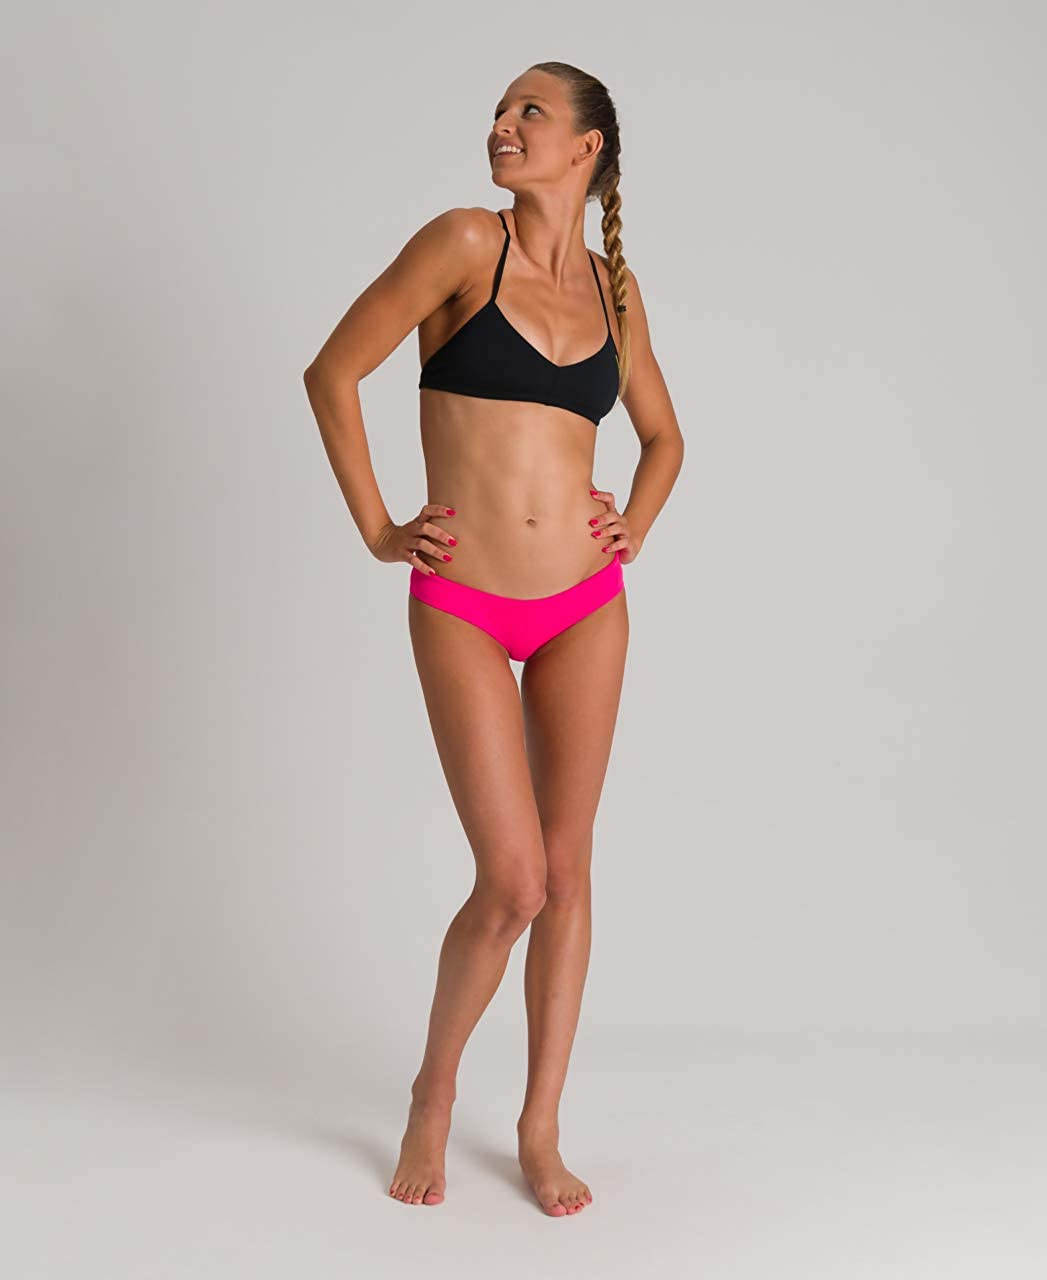 Womens Unique f/ür Athletinnen Arena Womens Athletinnen Training Bikini Fashion Unique